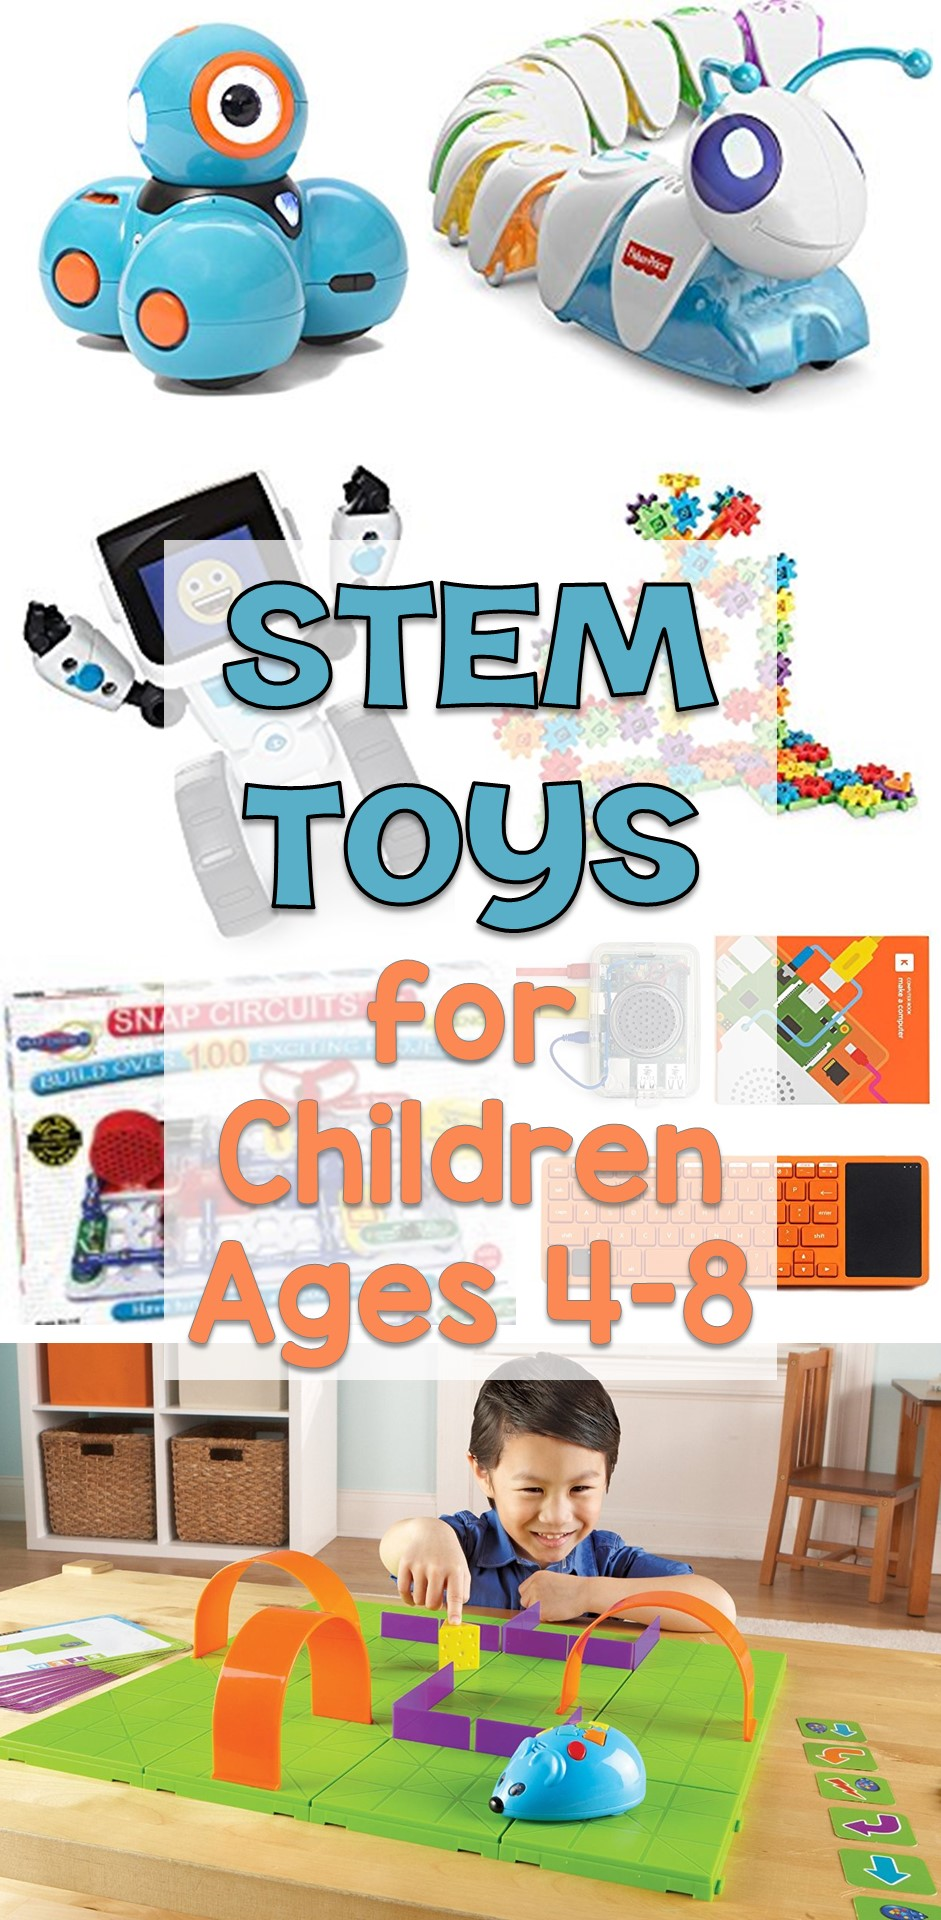 Toys For Ages 8 12 : Stem toys for children ages lessons little ones